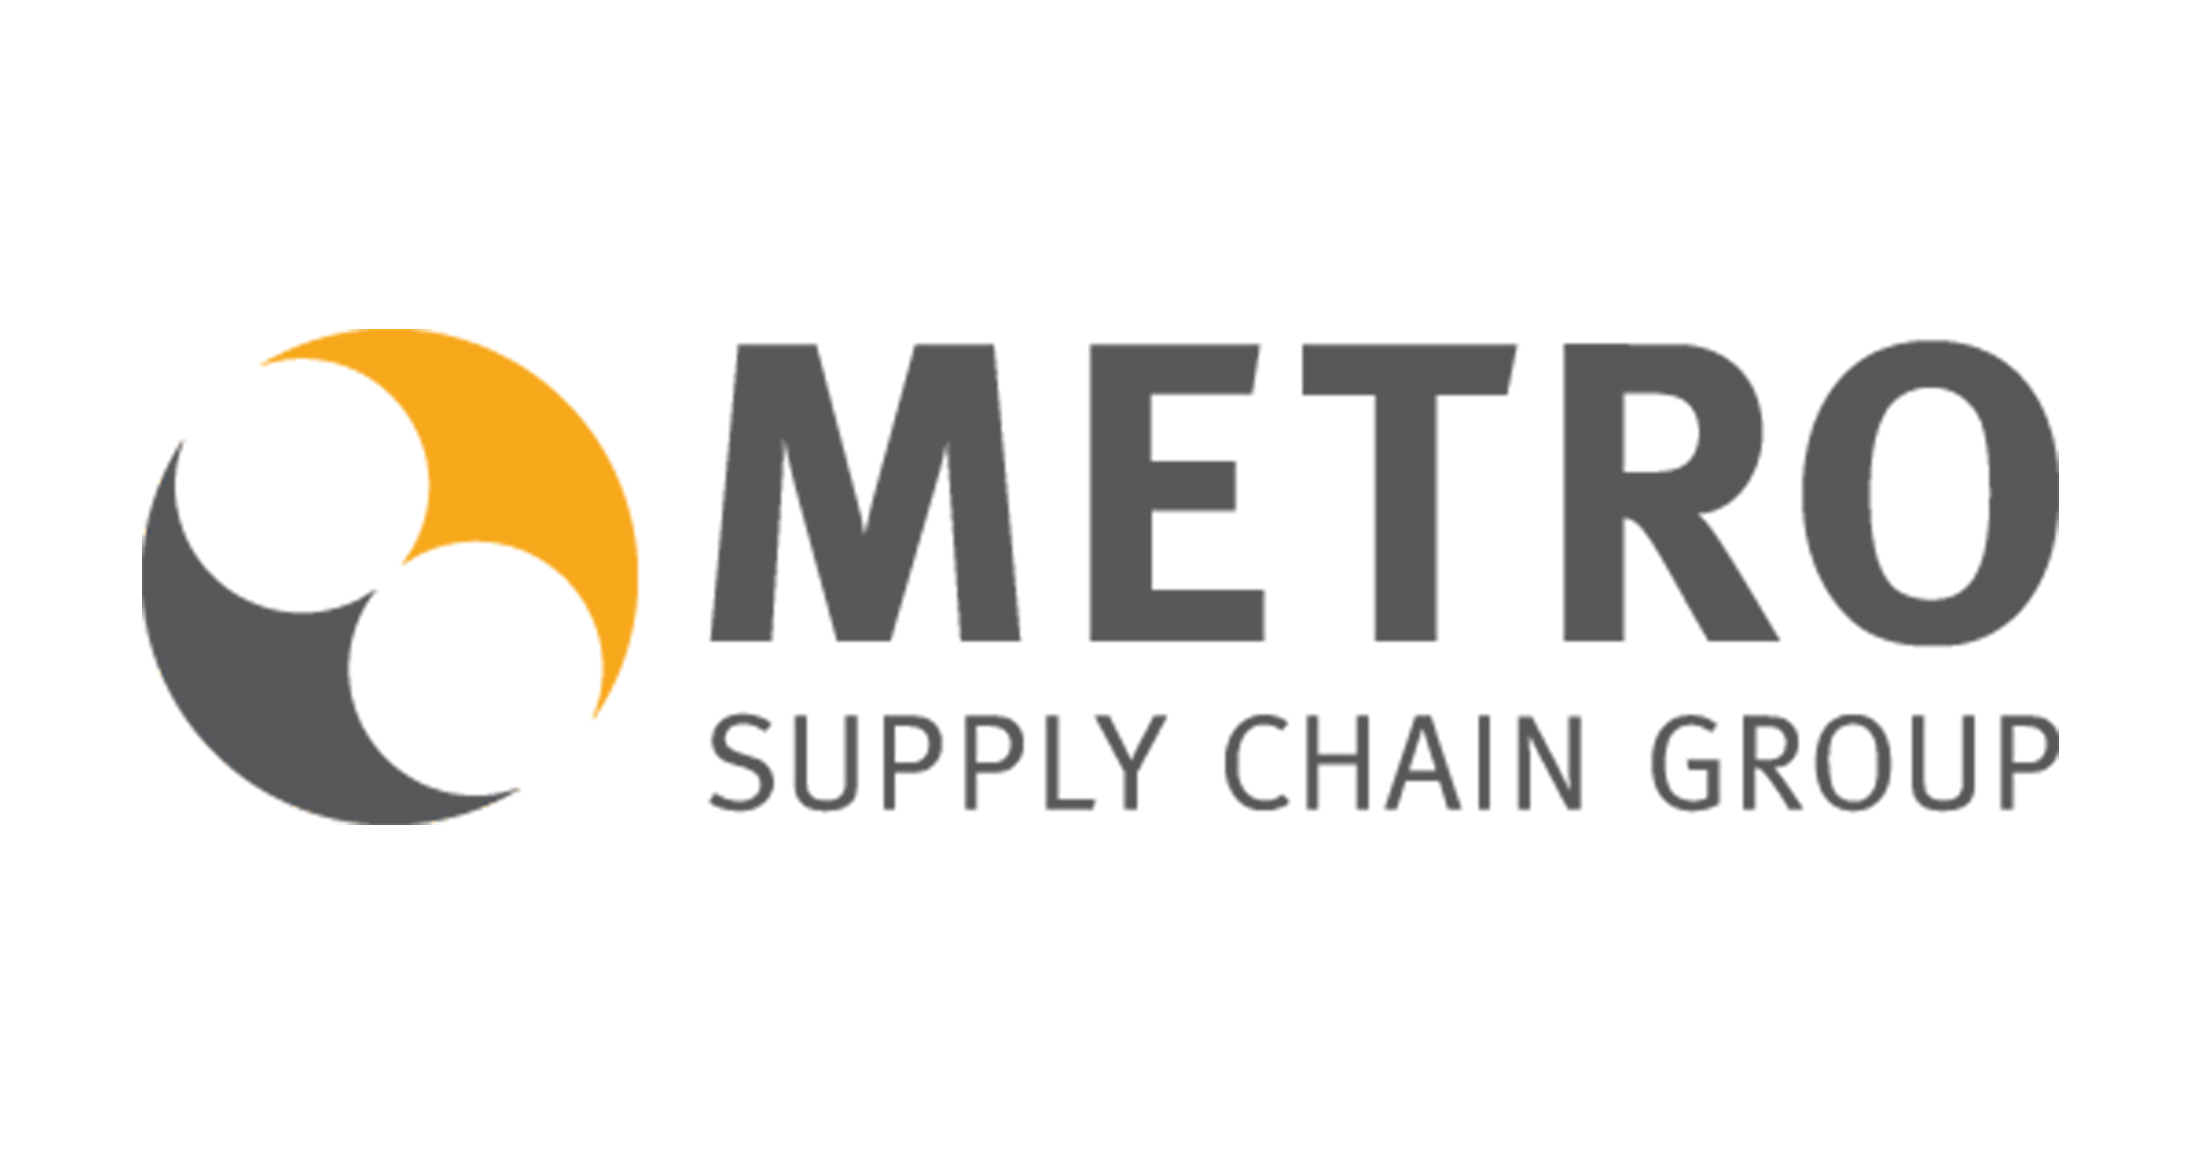 Metro Supply Chain Group Appoints New U.S. Business Lead